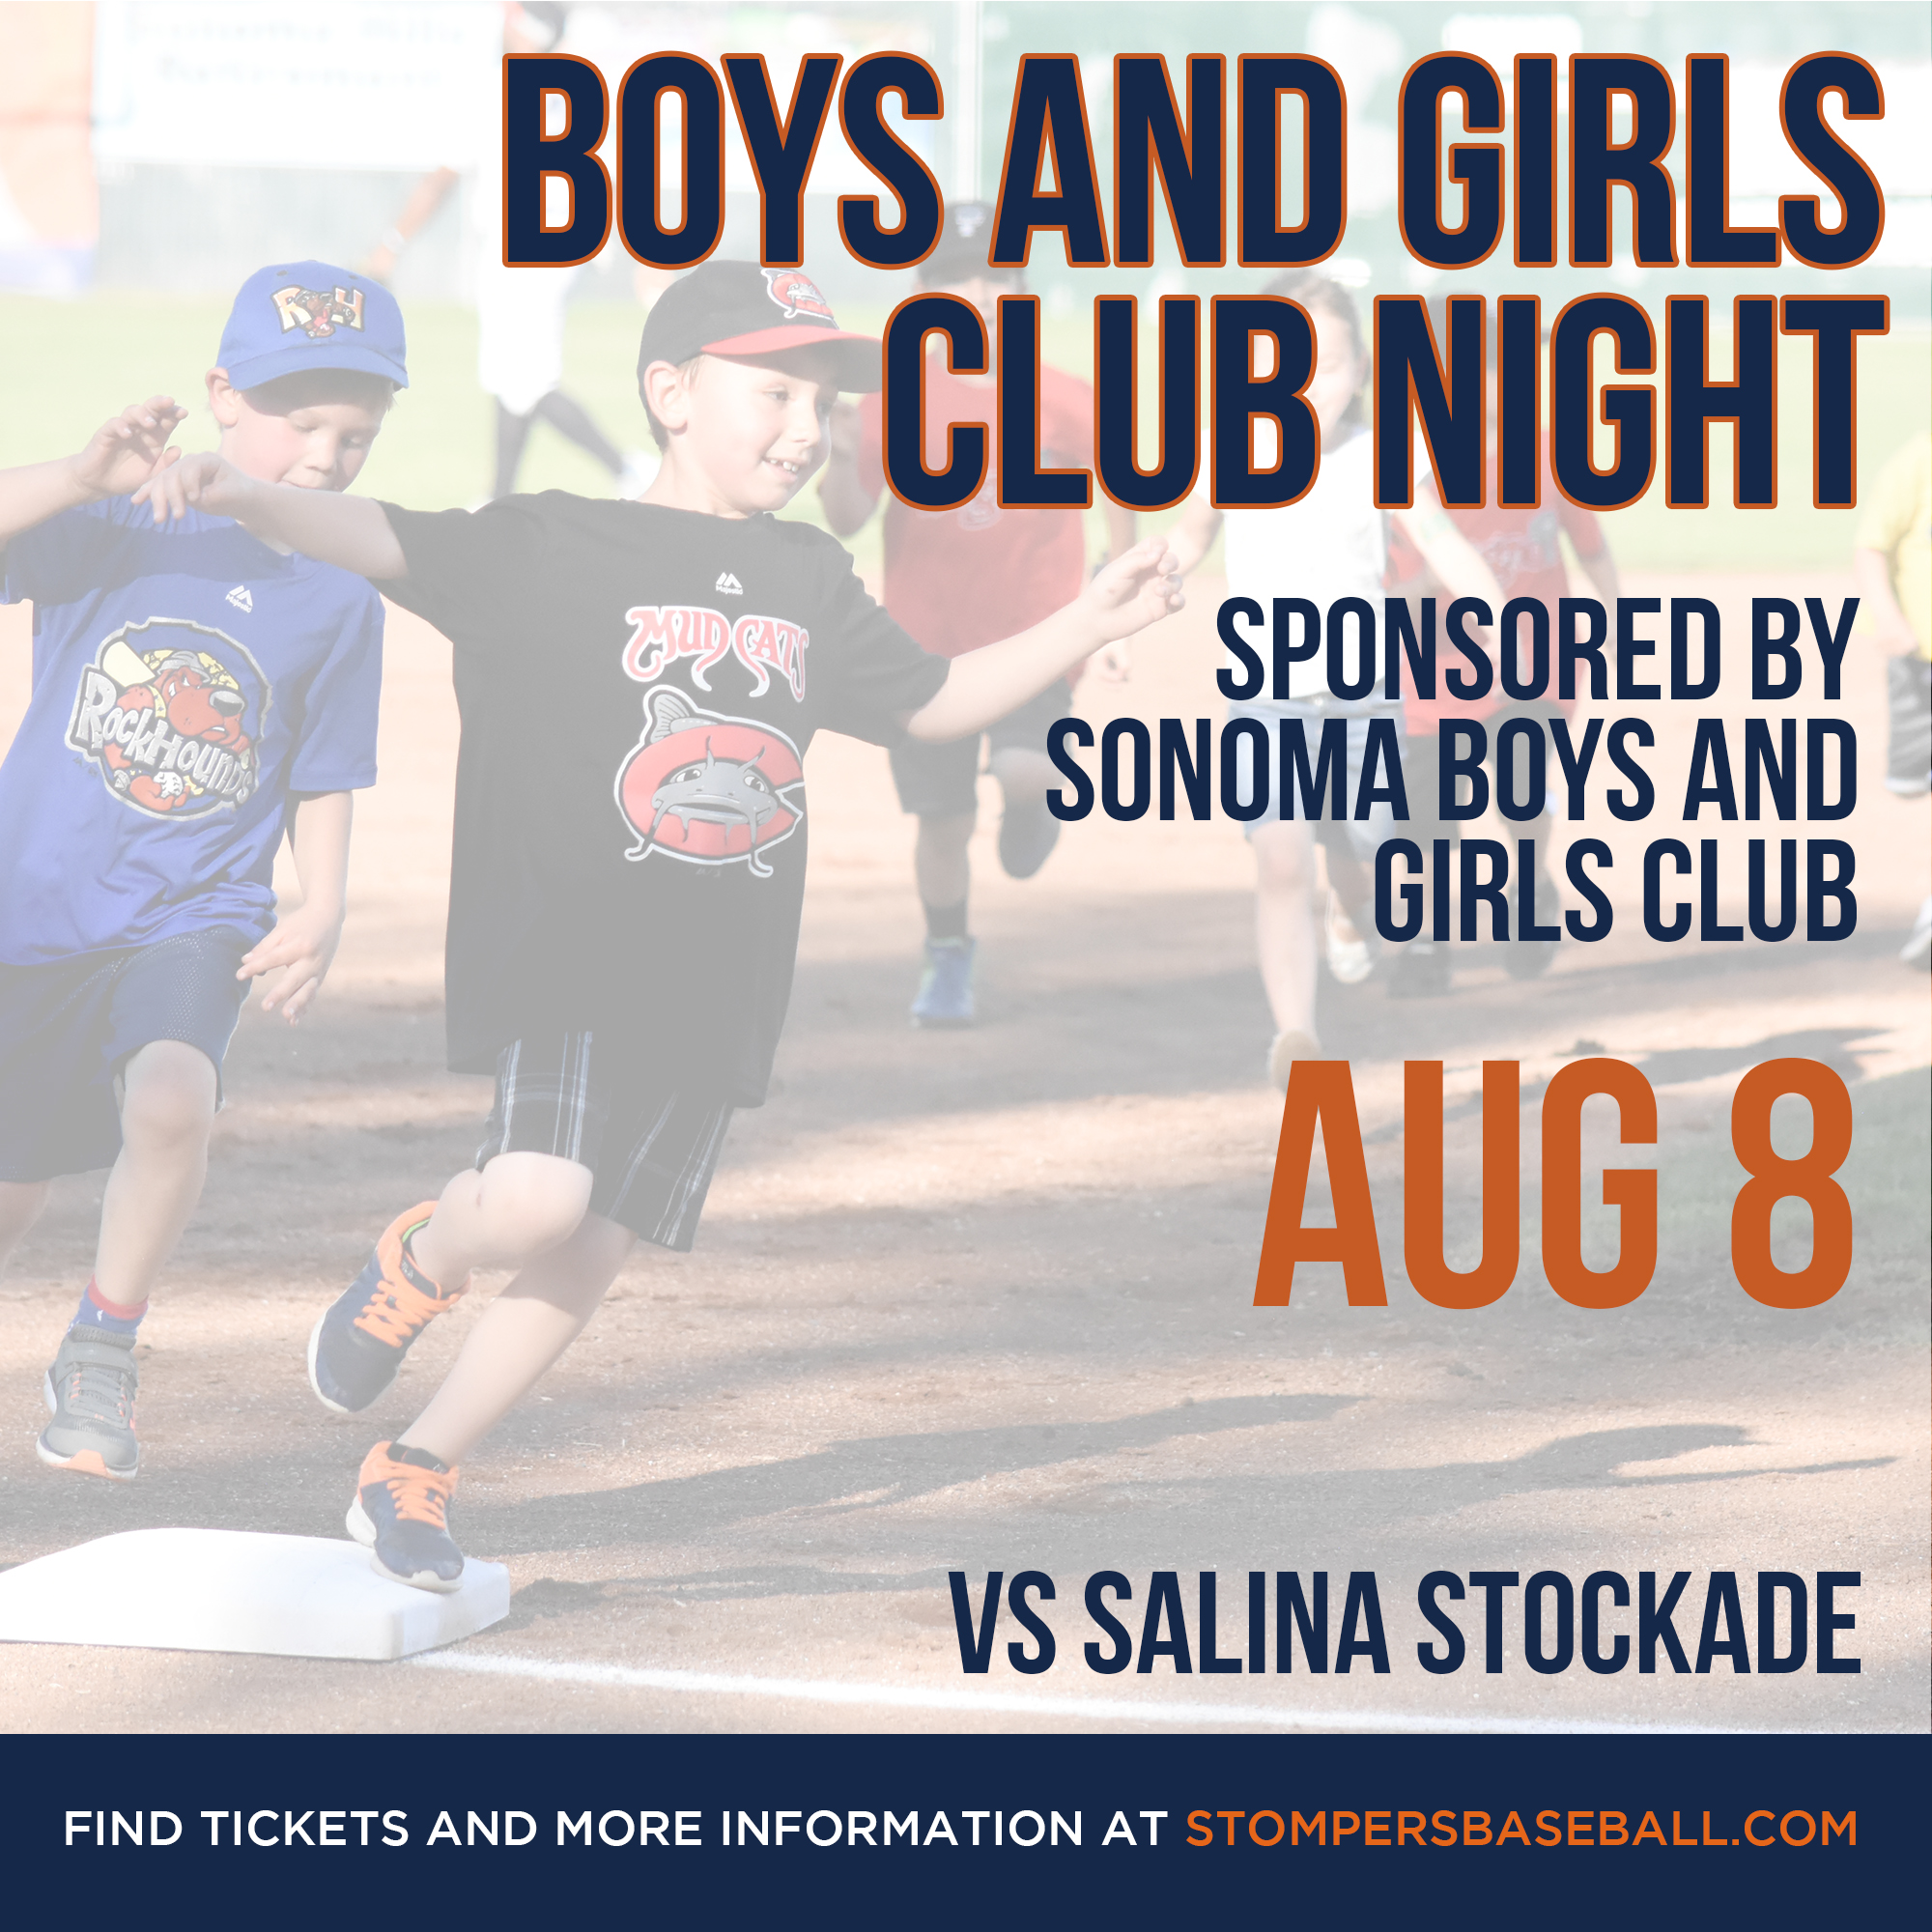 Aug 8: Boys and Girls Club Night - It's Boy and Girls Club Night at Palooza Parka at Arnold Field presented by the Sonoma Boys and Girls Club!